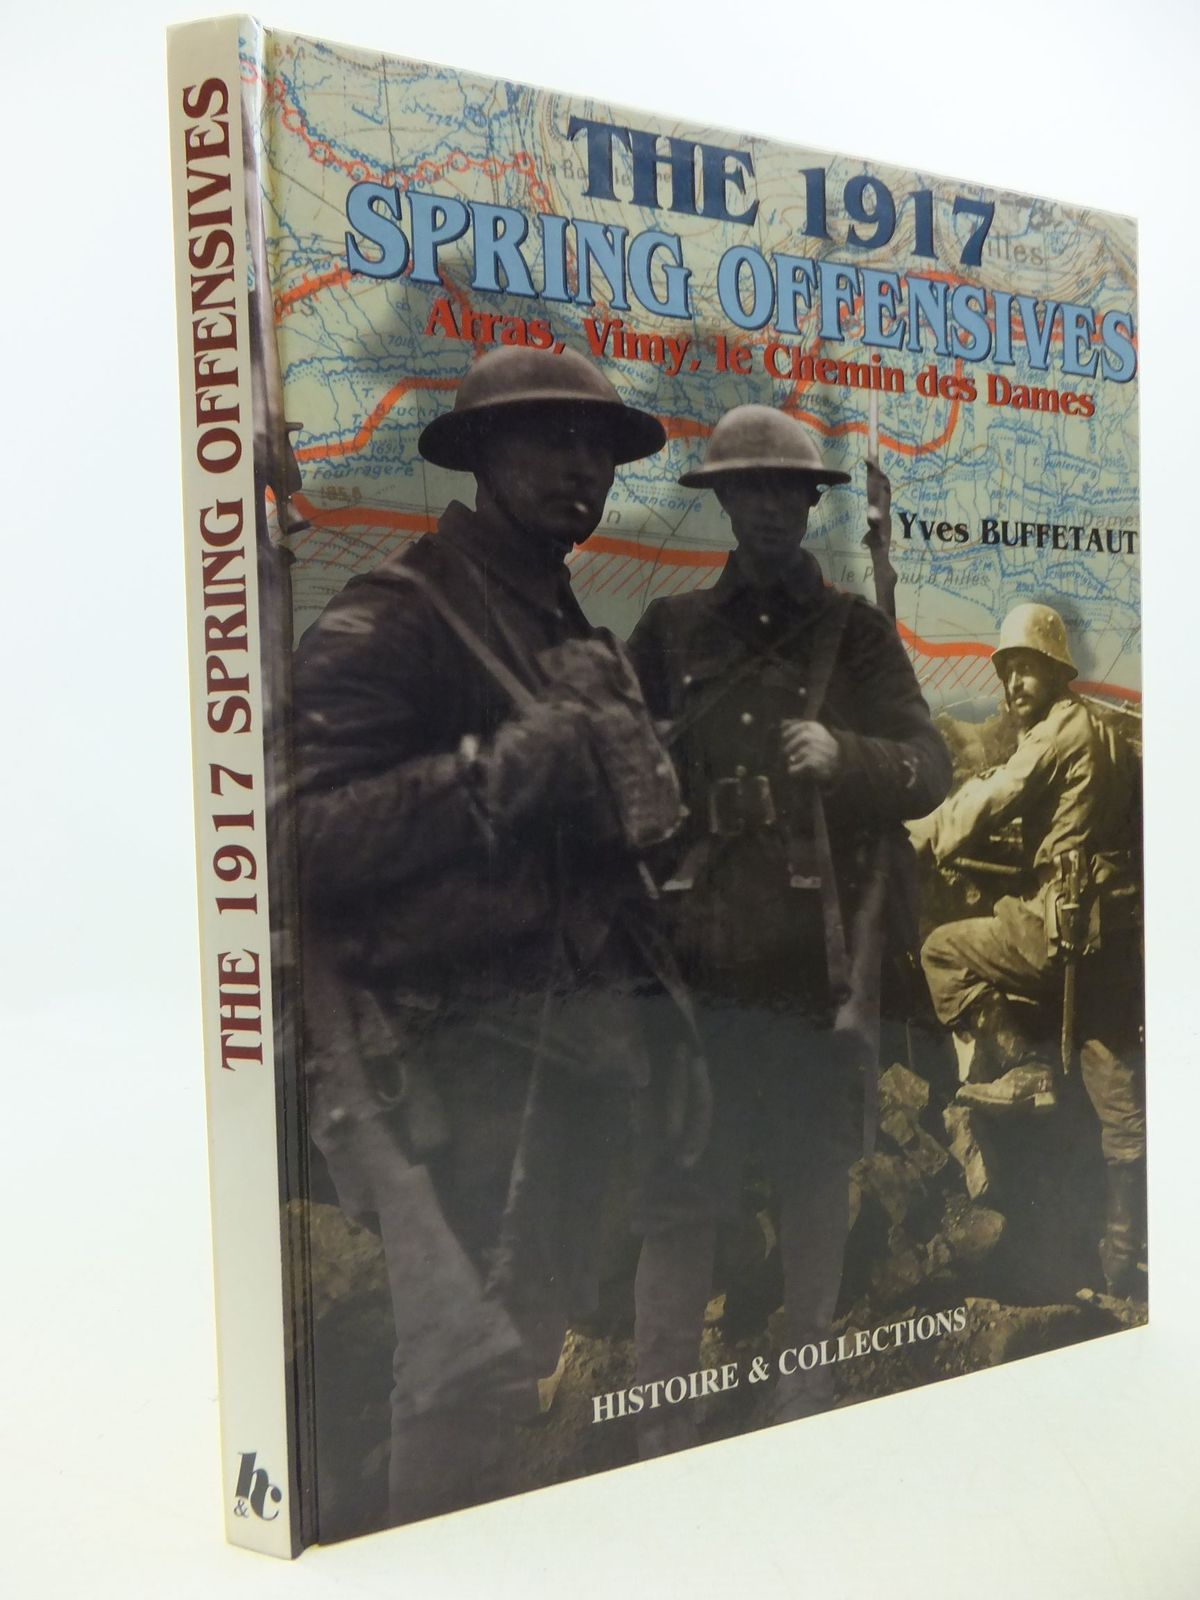 Photo of THE 1917 SPRING OFFENSIVES ARRAS, VIMY, LE CHEMIN DES DAMES written by Buffetaut, Yves<br />Lepretre, Bernard published by Histoire &amp; Collections (STOCK CODE: 1710088)  for sale by Stella & Rose's Books